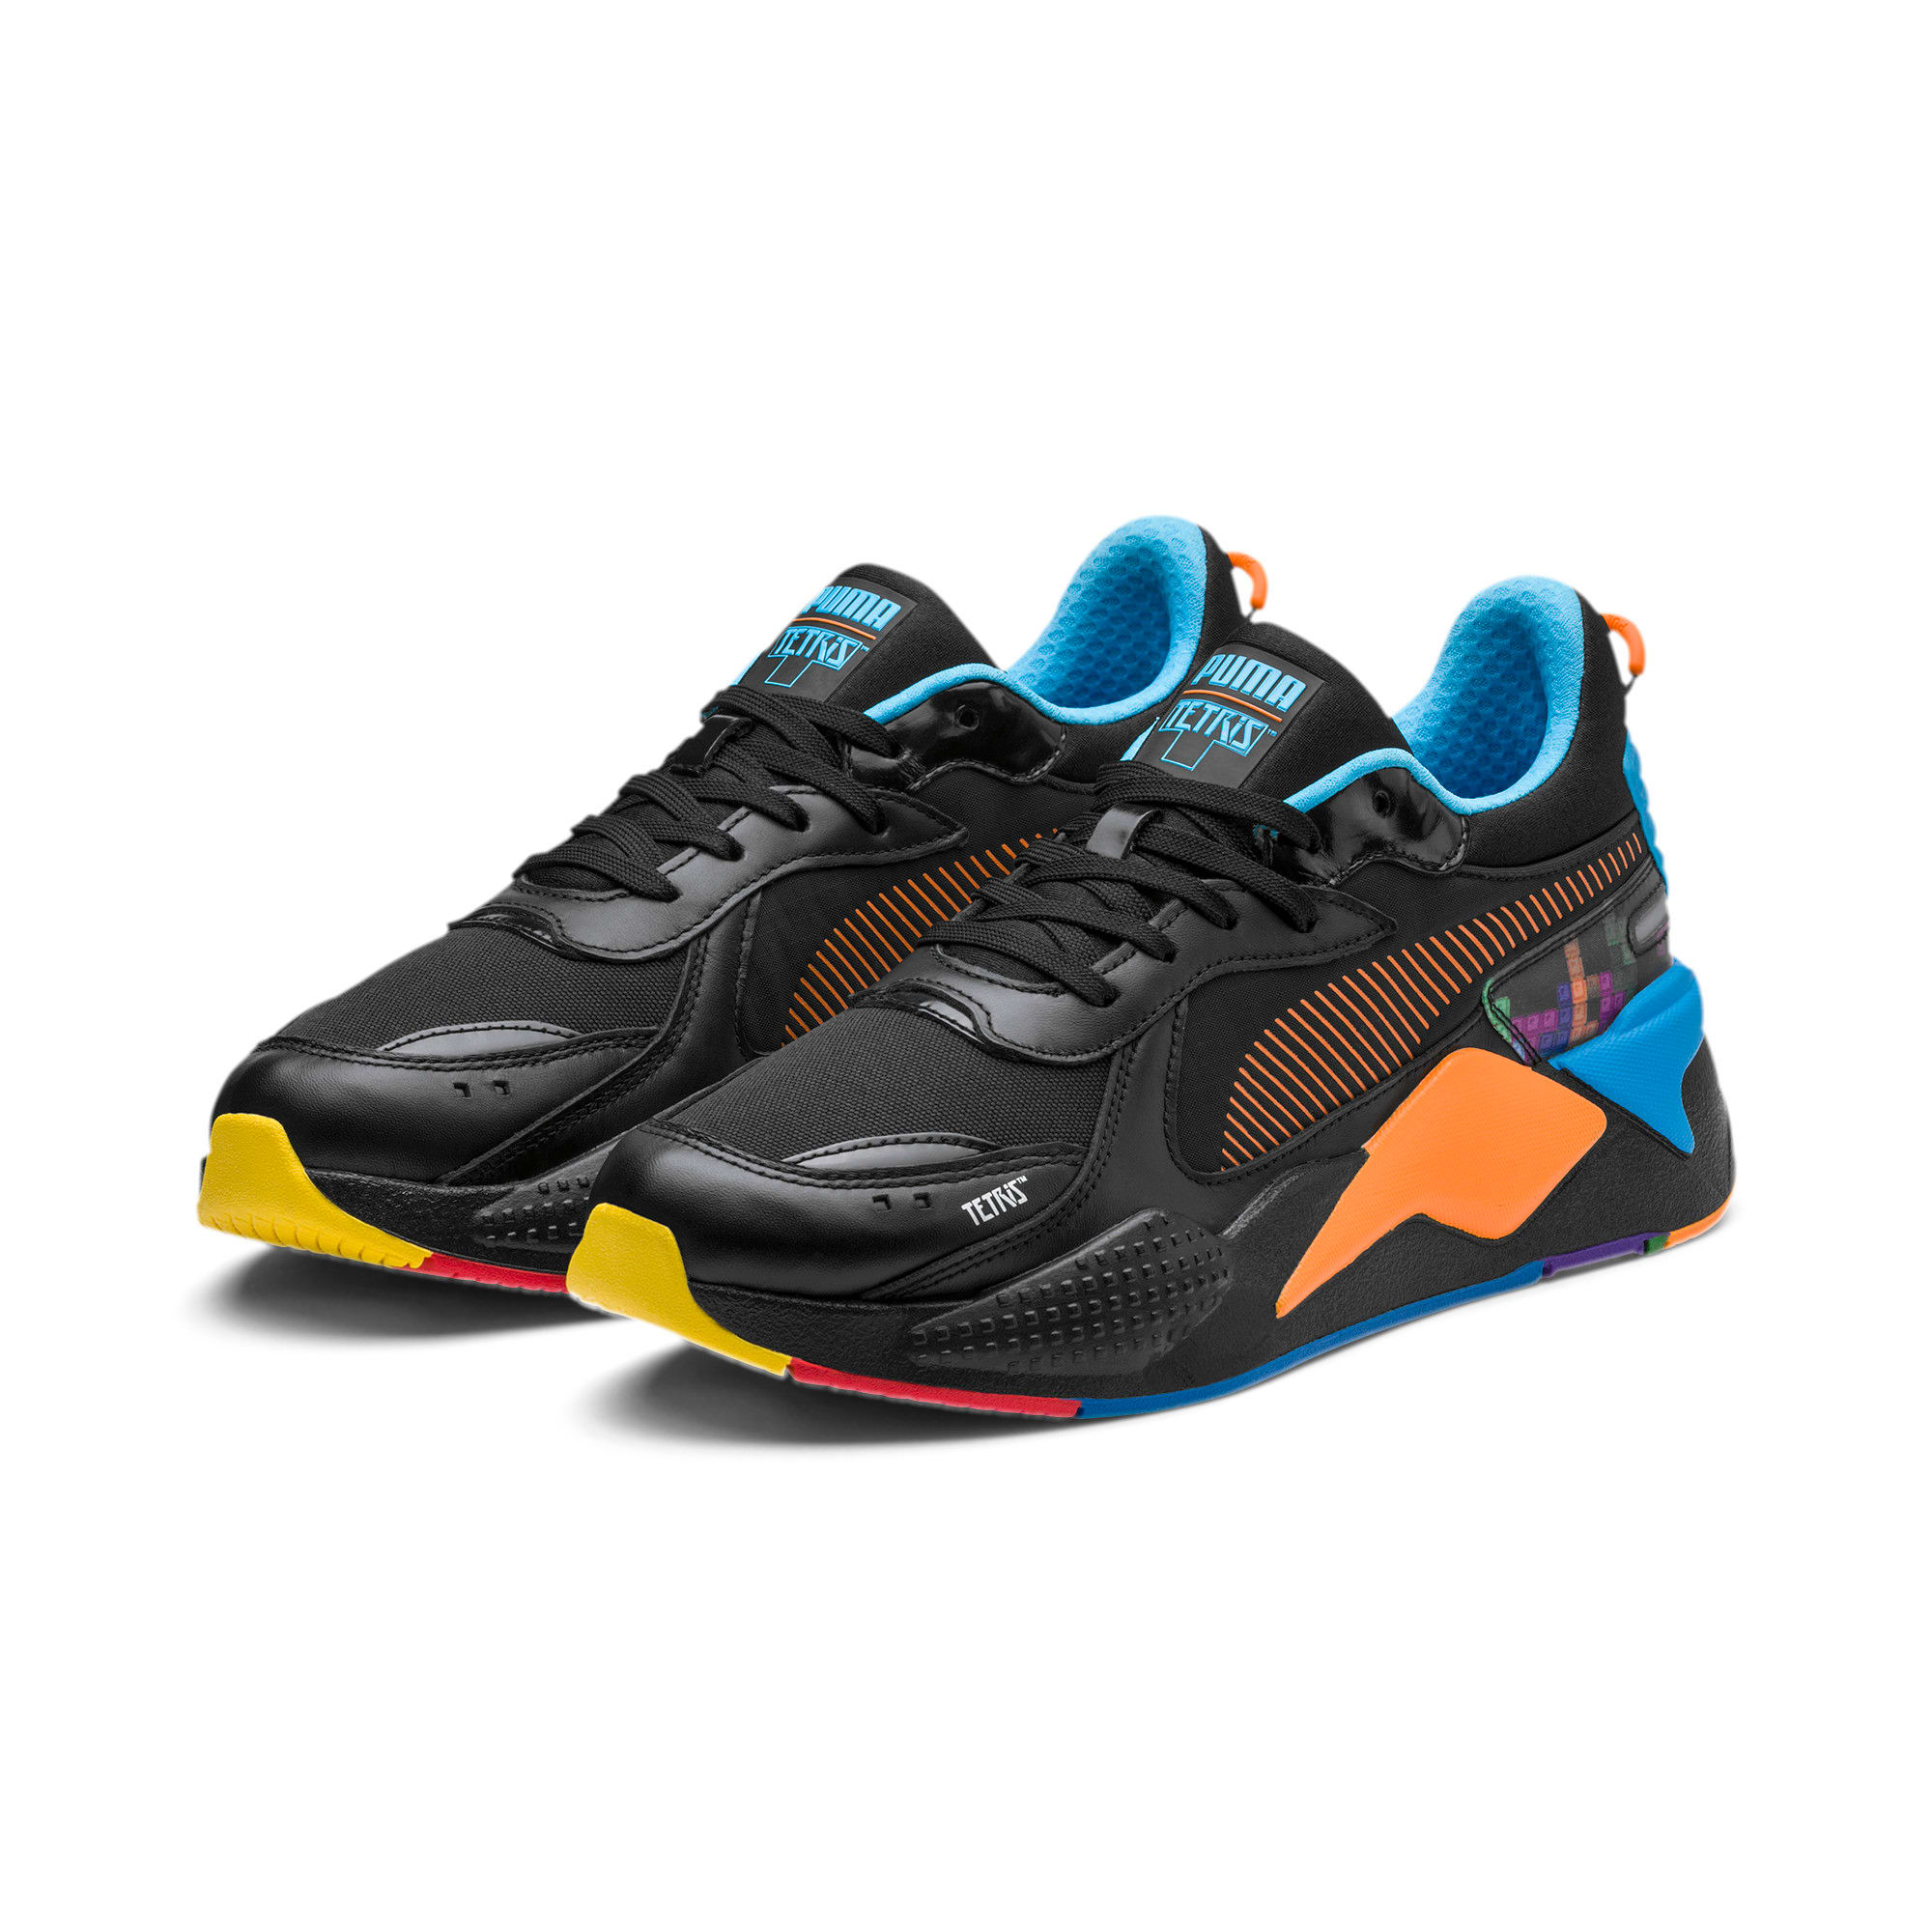 Thumbnail 2 of PUMA x TETRIS RS-X スニーカー, Puma Black-Luminous Blue, medium-JPN